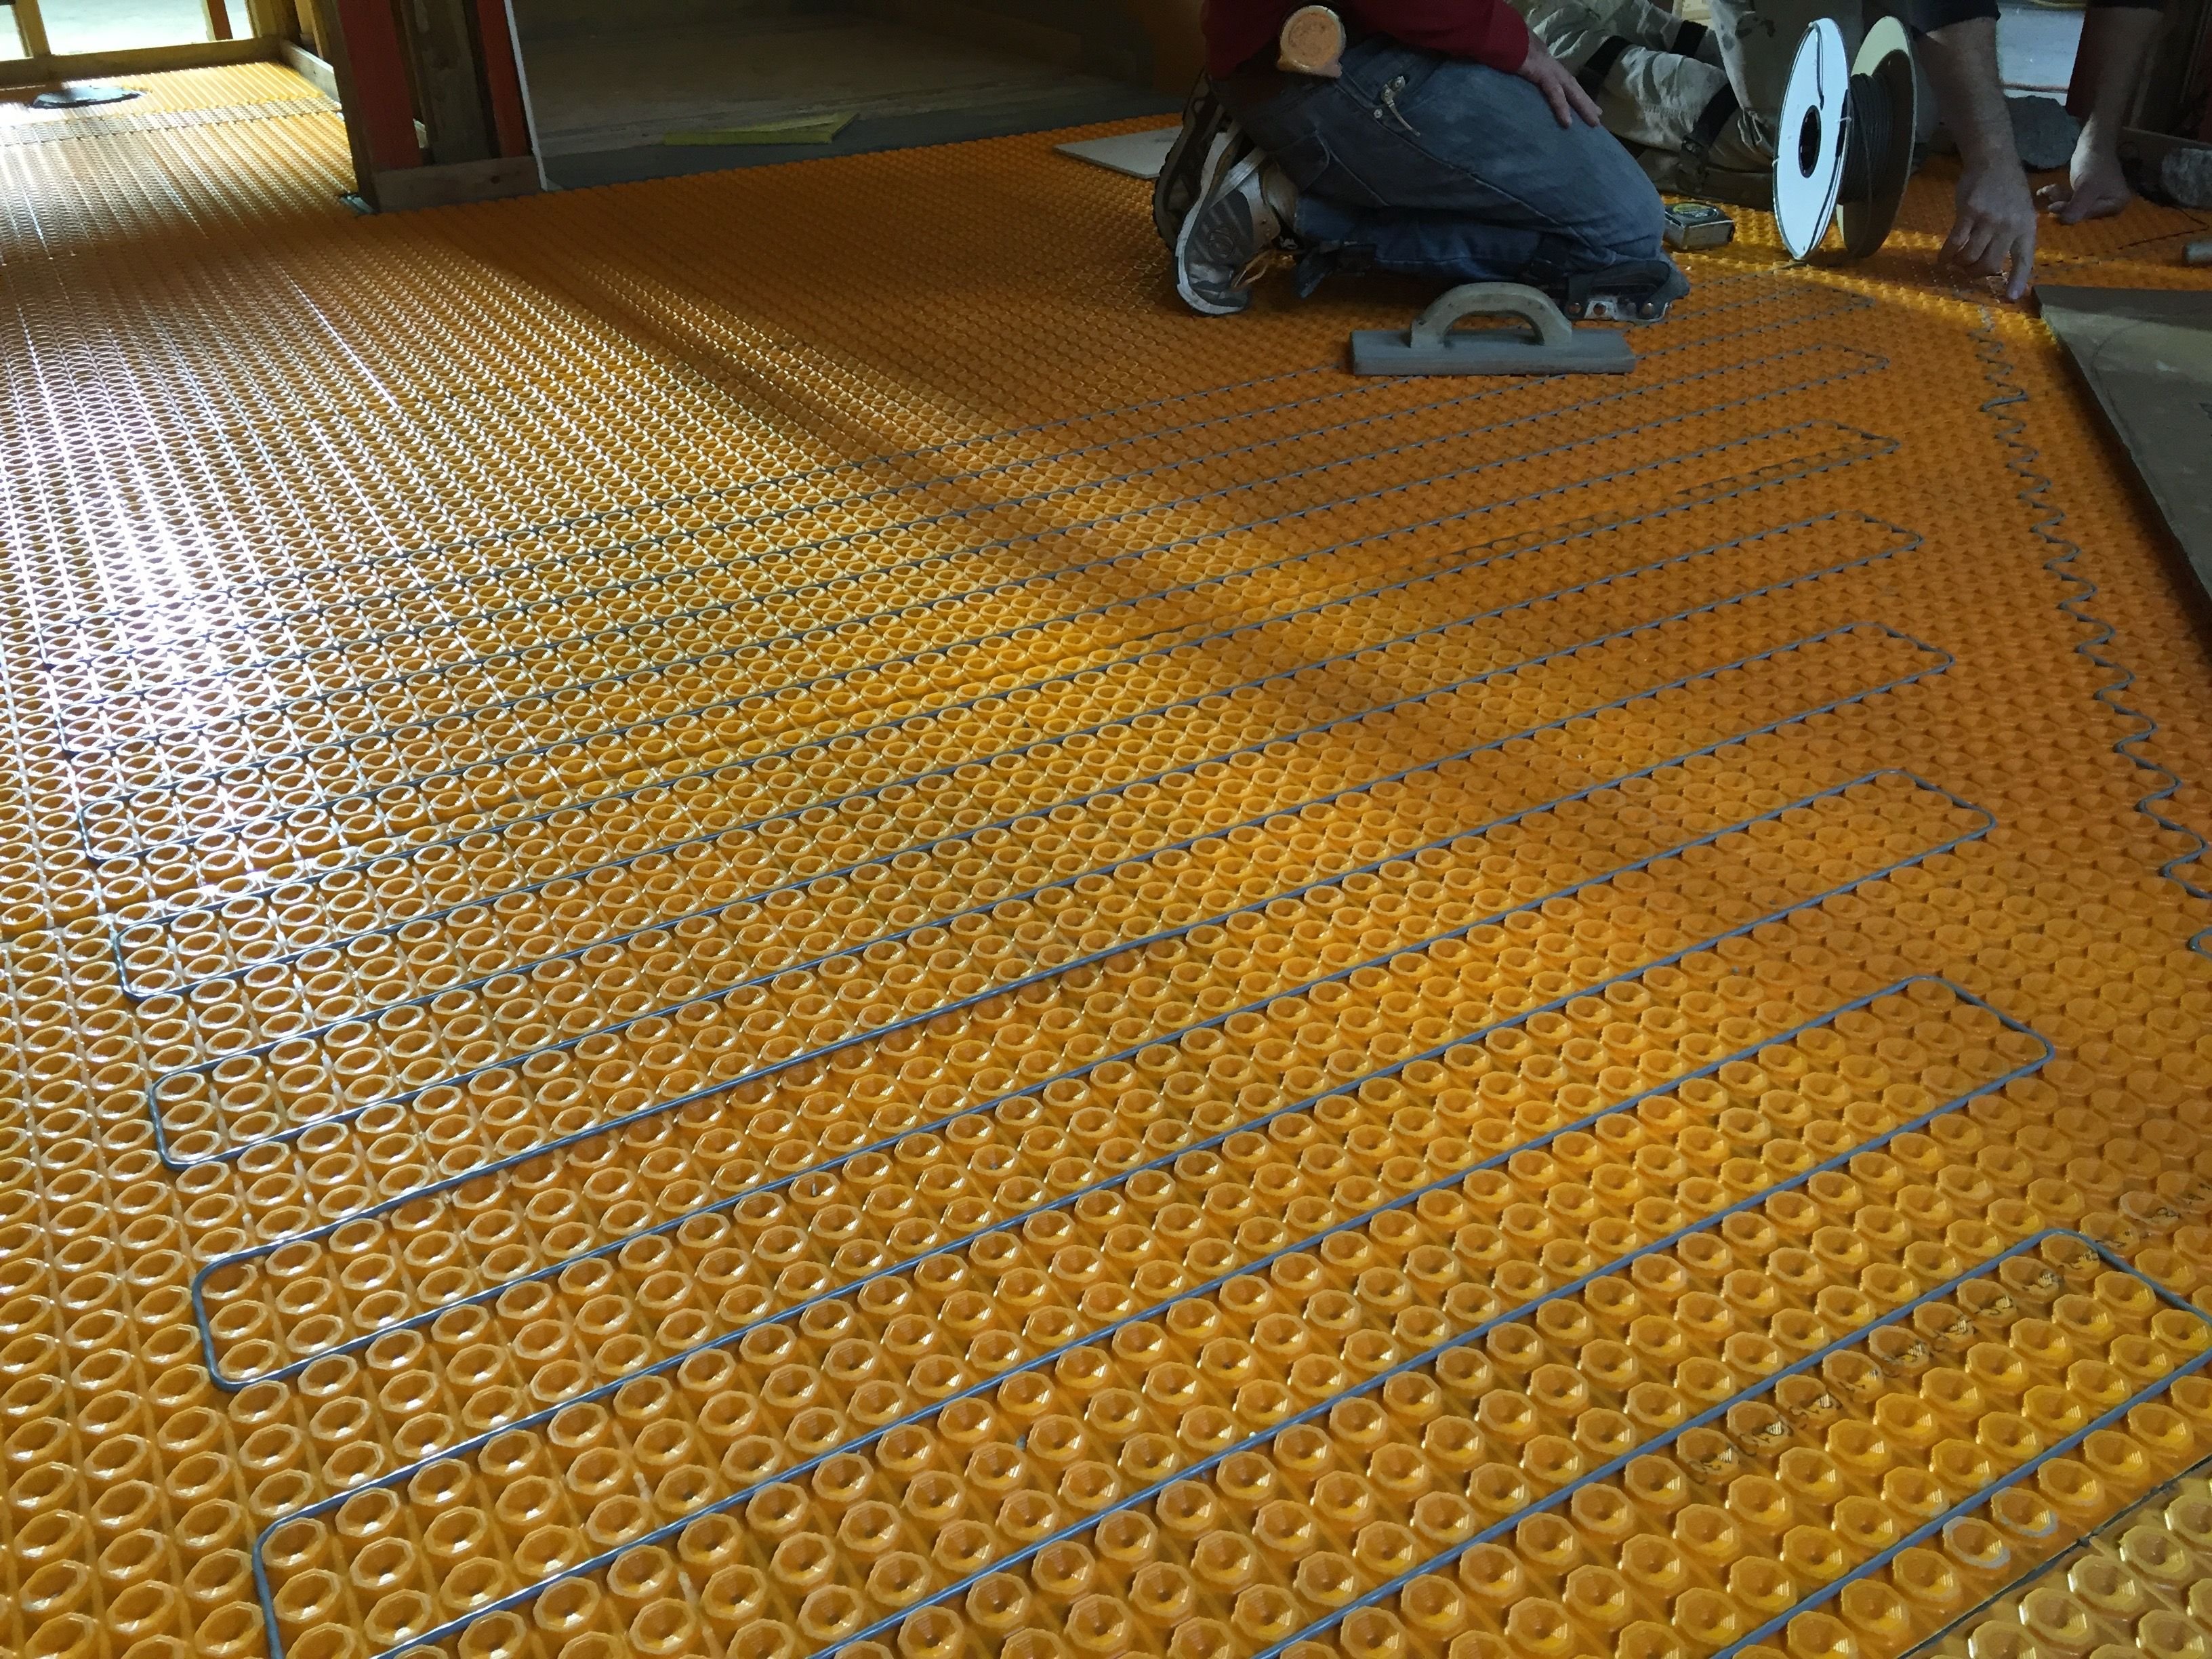 Floor Heat For Tile Floors Tile Installation Underfloor Heating Systems Tile Floor